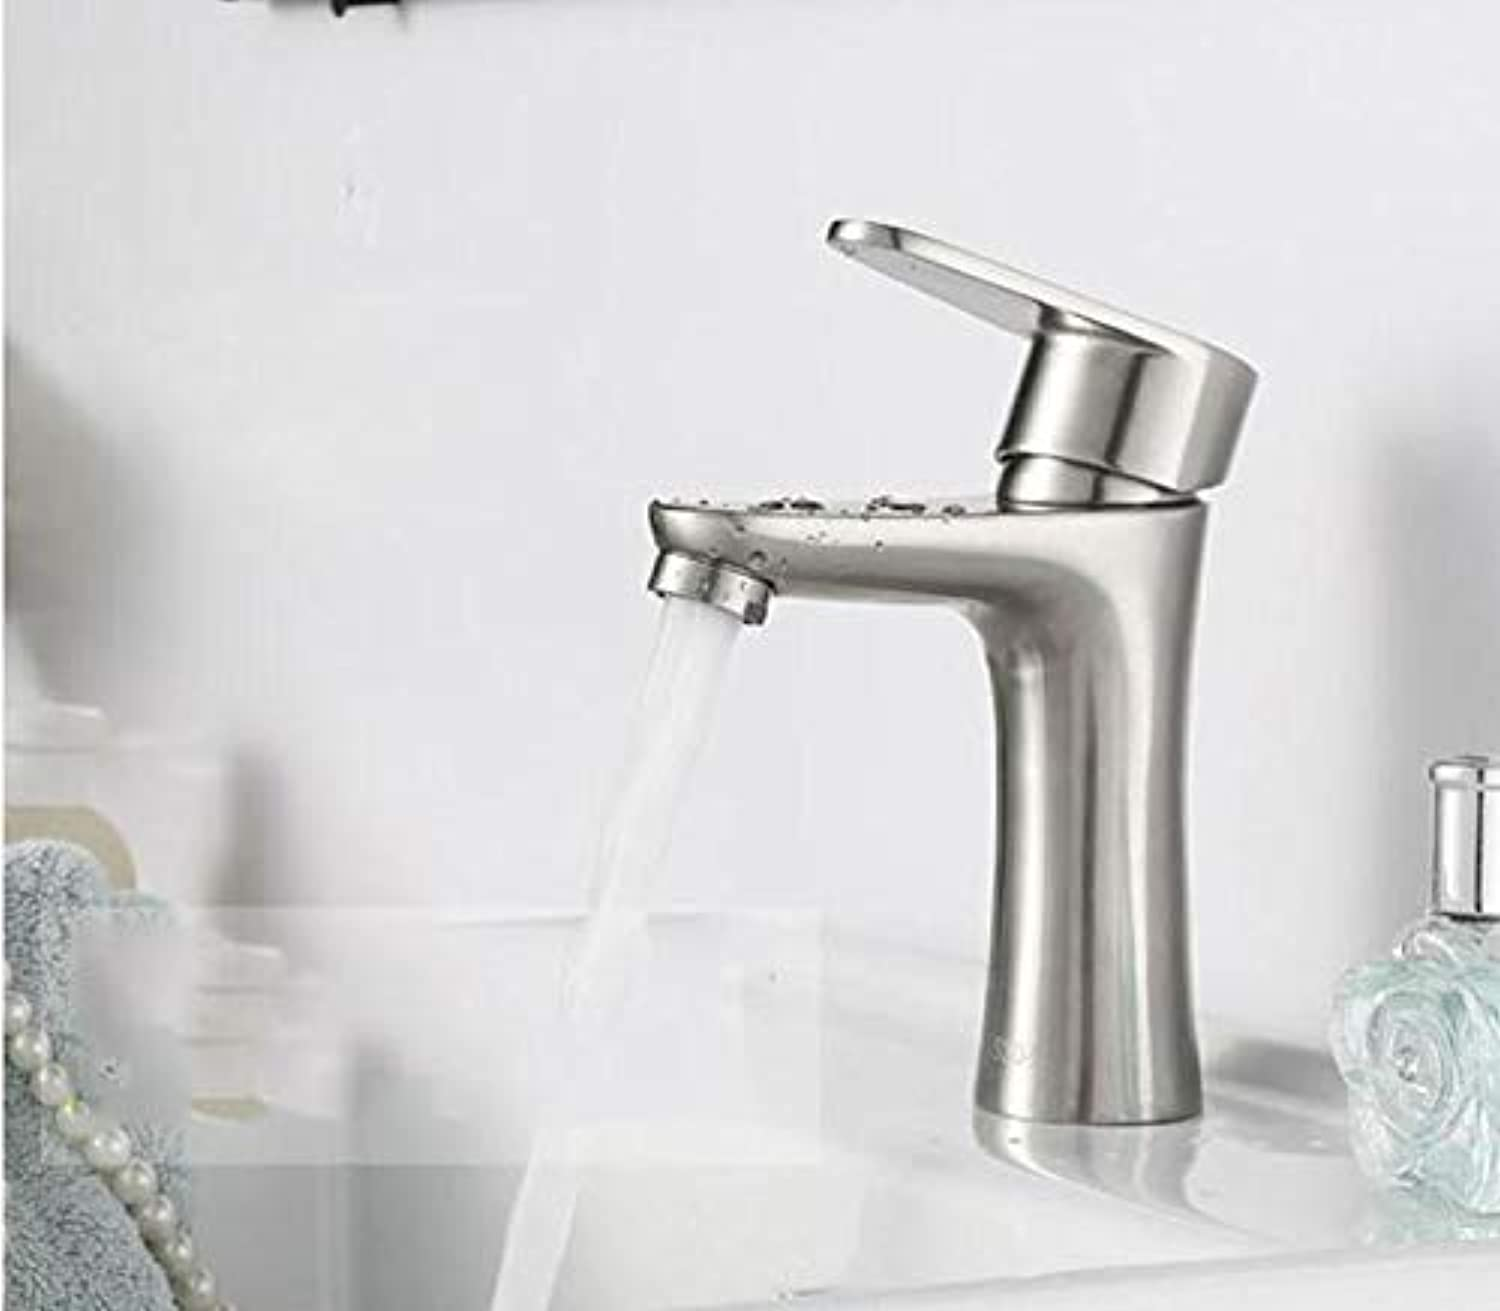 Hlluya Professional Sink Mixer Tap Kitchen Faucet Stainless steel basin mixer bathroom to redate the C